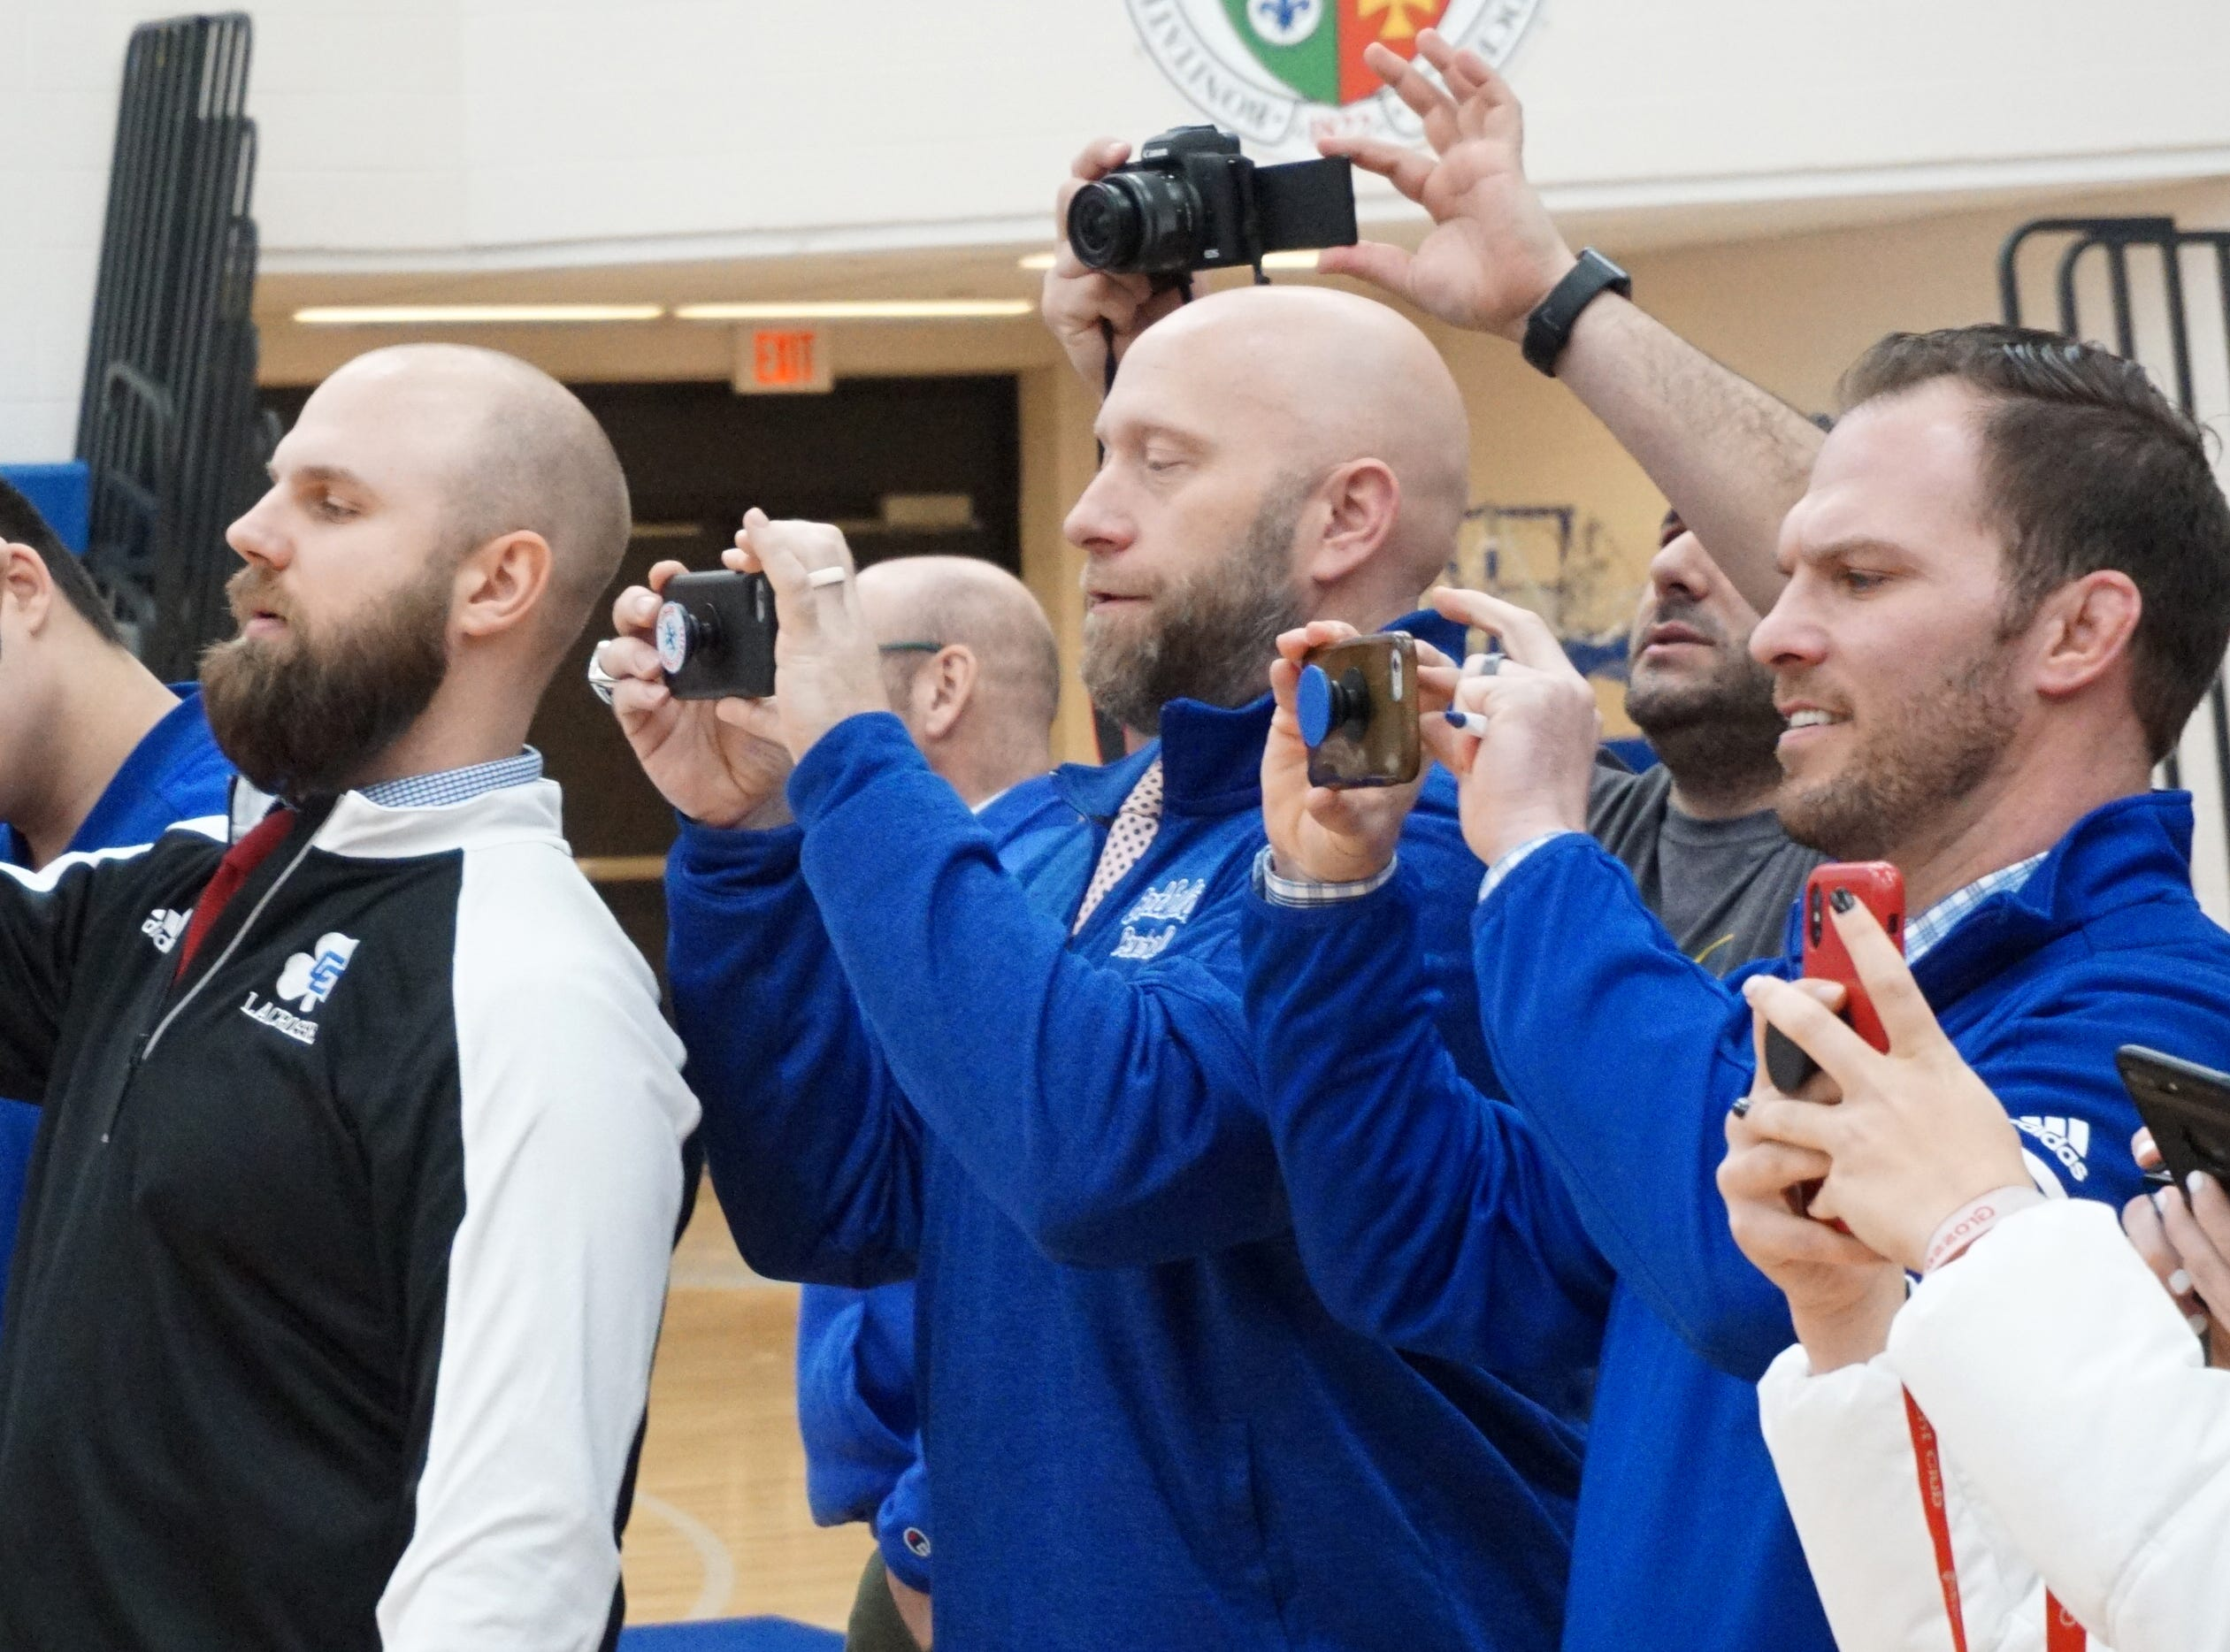 Detroit Cathlic Central staff and family take photos of their scholar-athletes on Feb. 7.